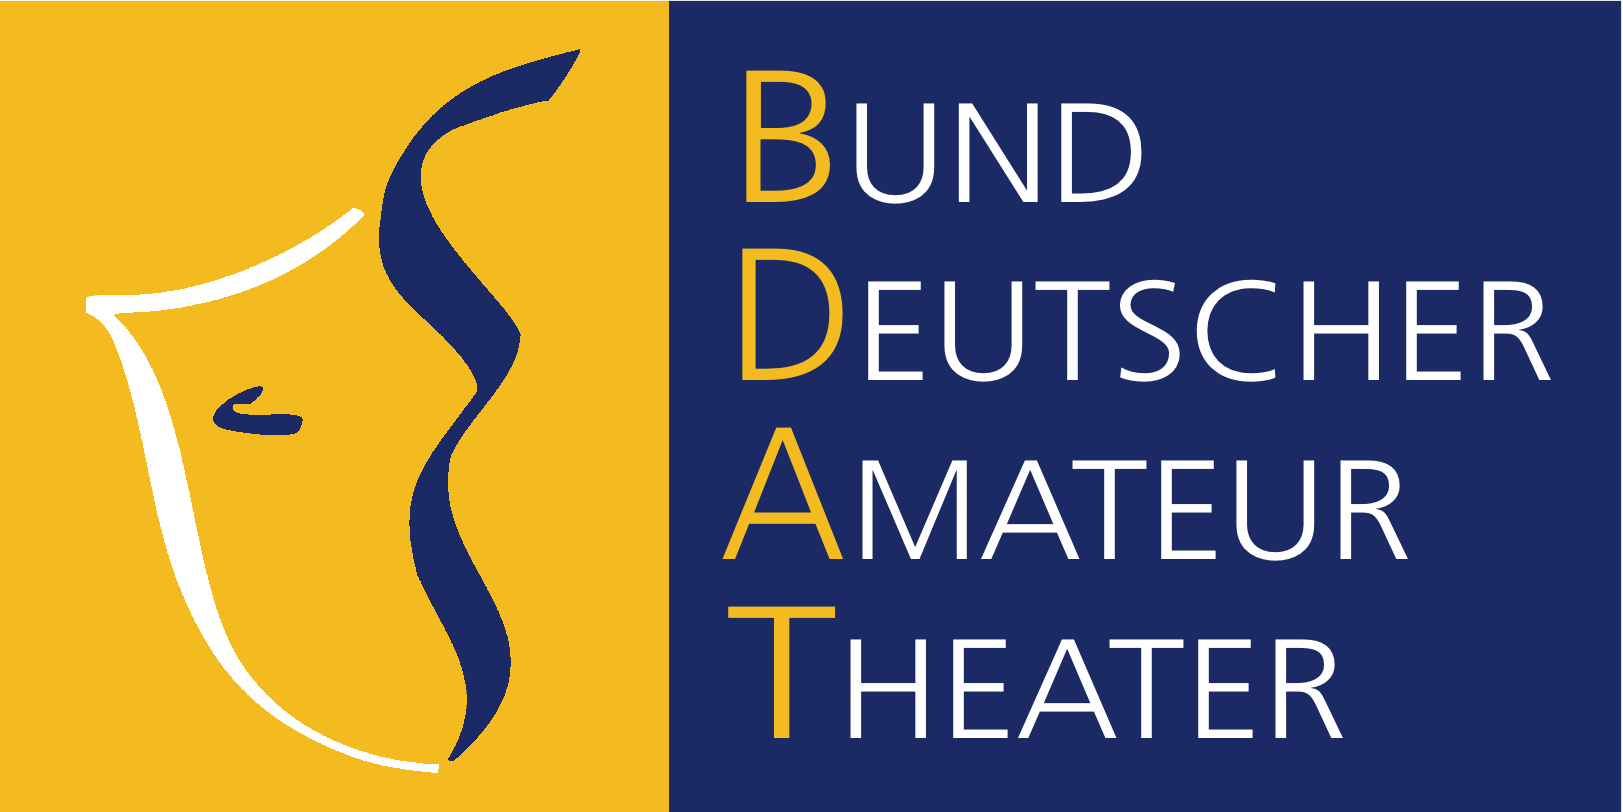 Bund deutscher Amateurtheater